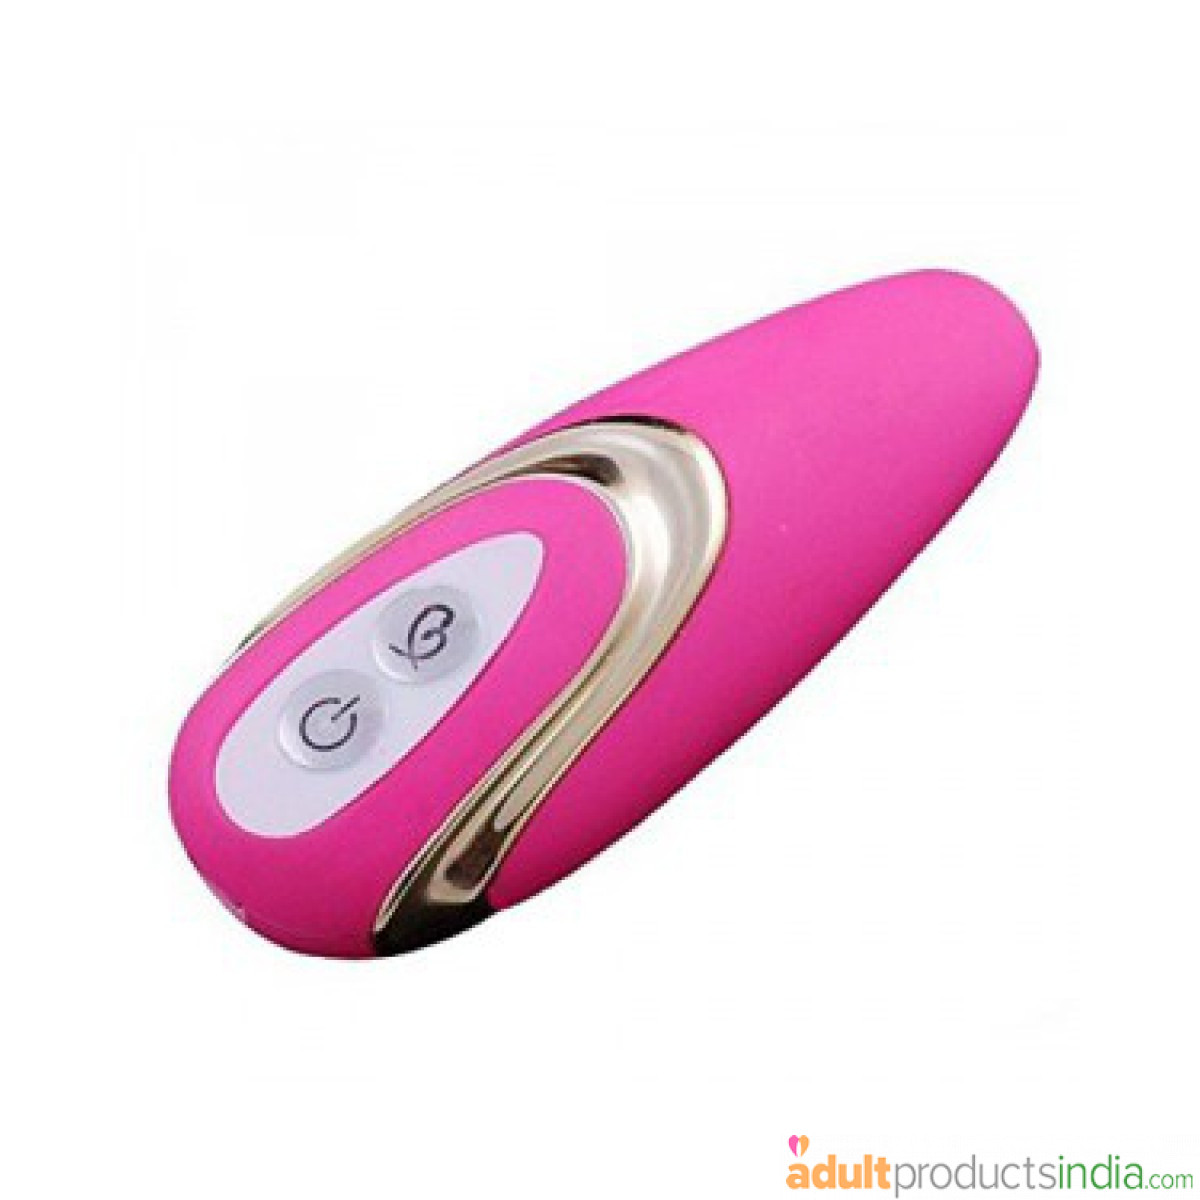 7 Speed G-Spot Vibrator - Front View